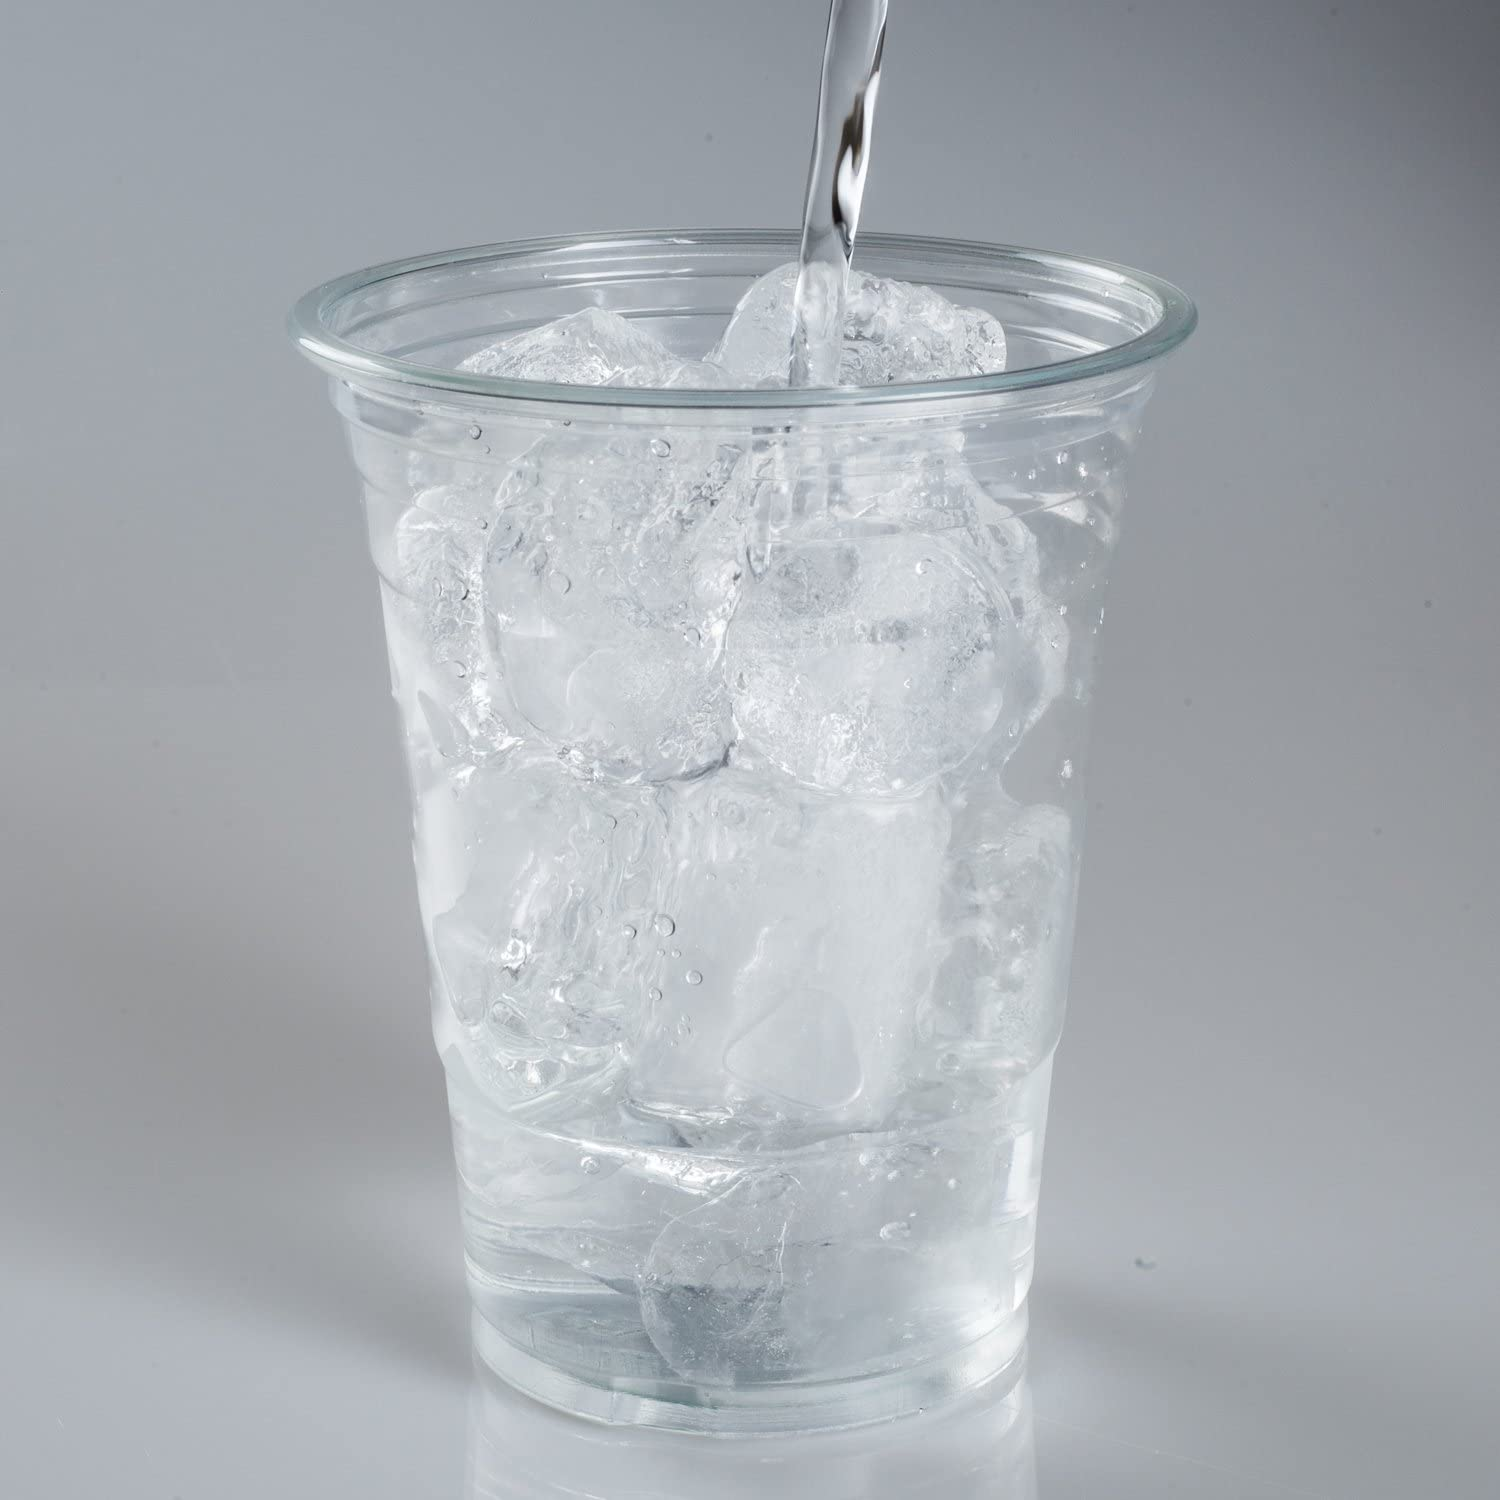 16 Ounce Plastic Drink Cups Ice Coffee Cups To Go TashiBox 100 Count Crystal Clear PET Party Cups